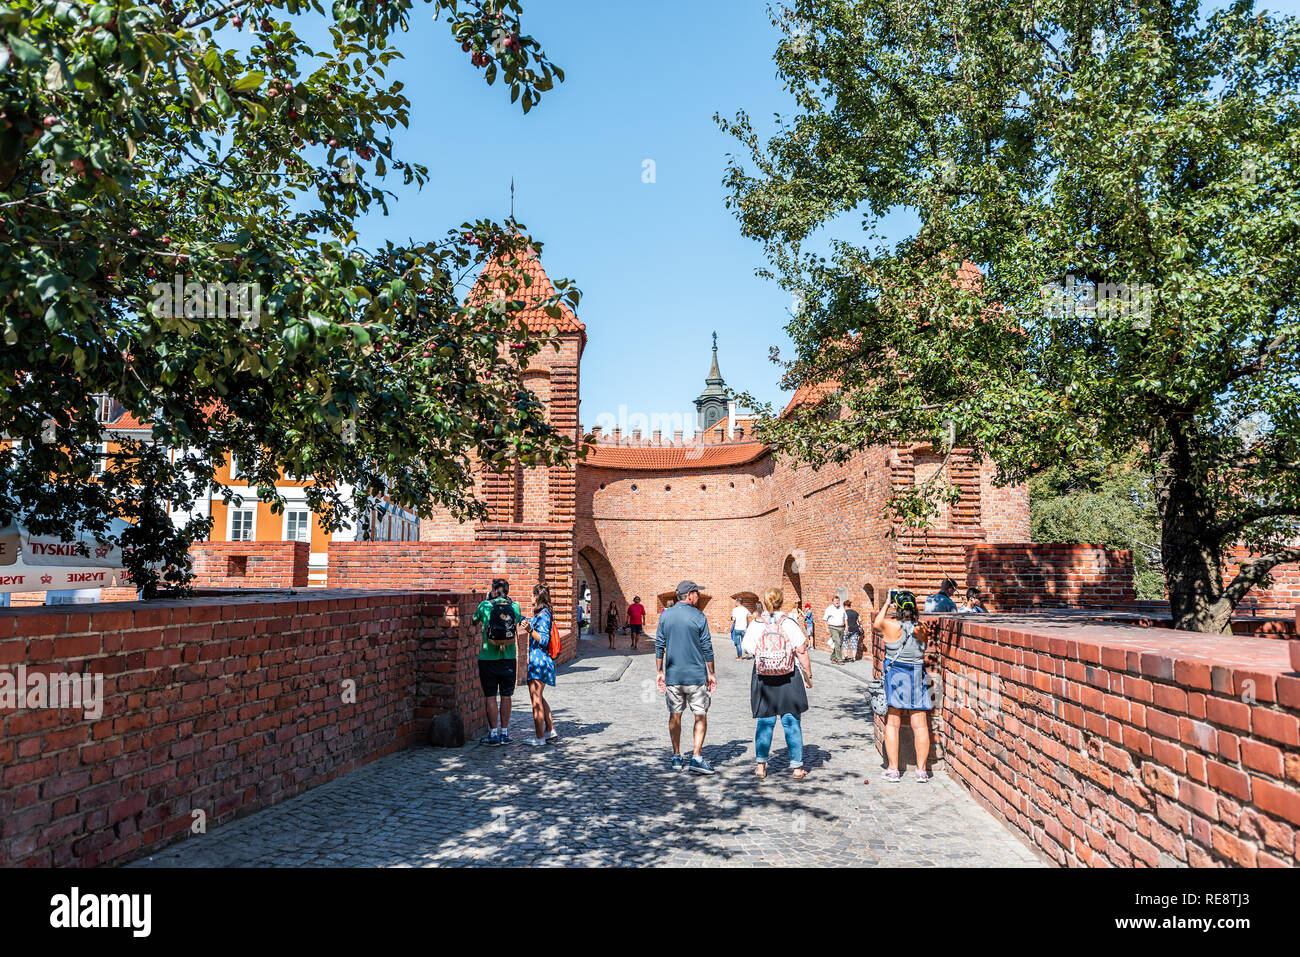 Warsaw, Poland - August 22, 2018: Famous old town historic street in capital city during sunny summer day and red orange brick wall fortress people wa Stock Photo